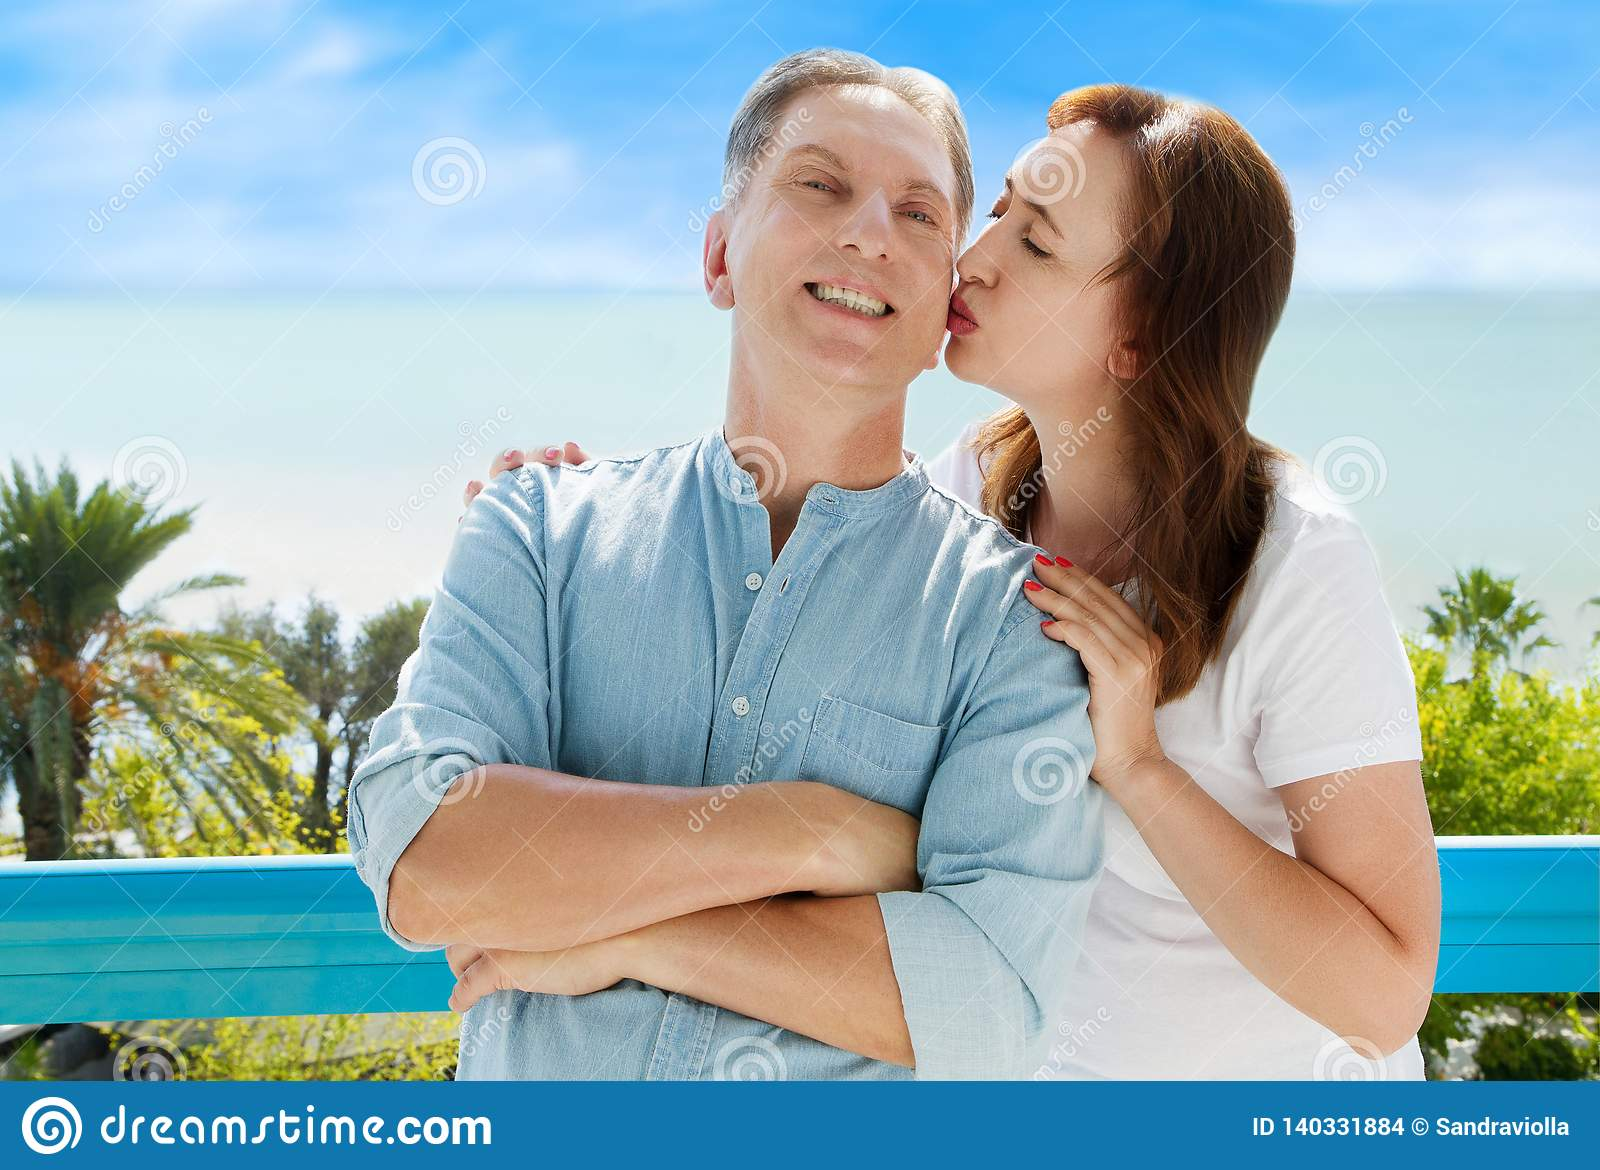 Summer family vacation. Happy middle aged couple having fun on travel holidays weekend. Sea and beach background. Copy space.